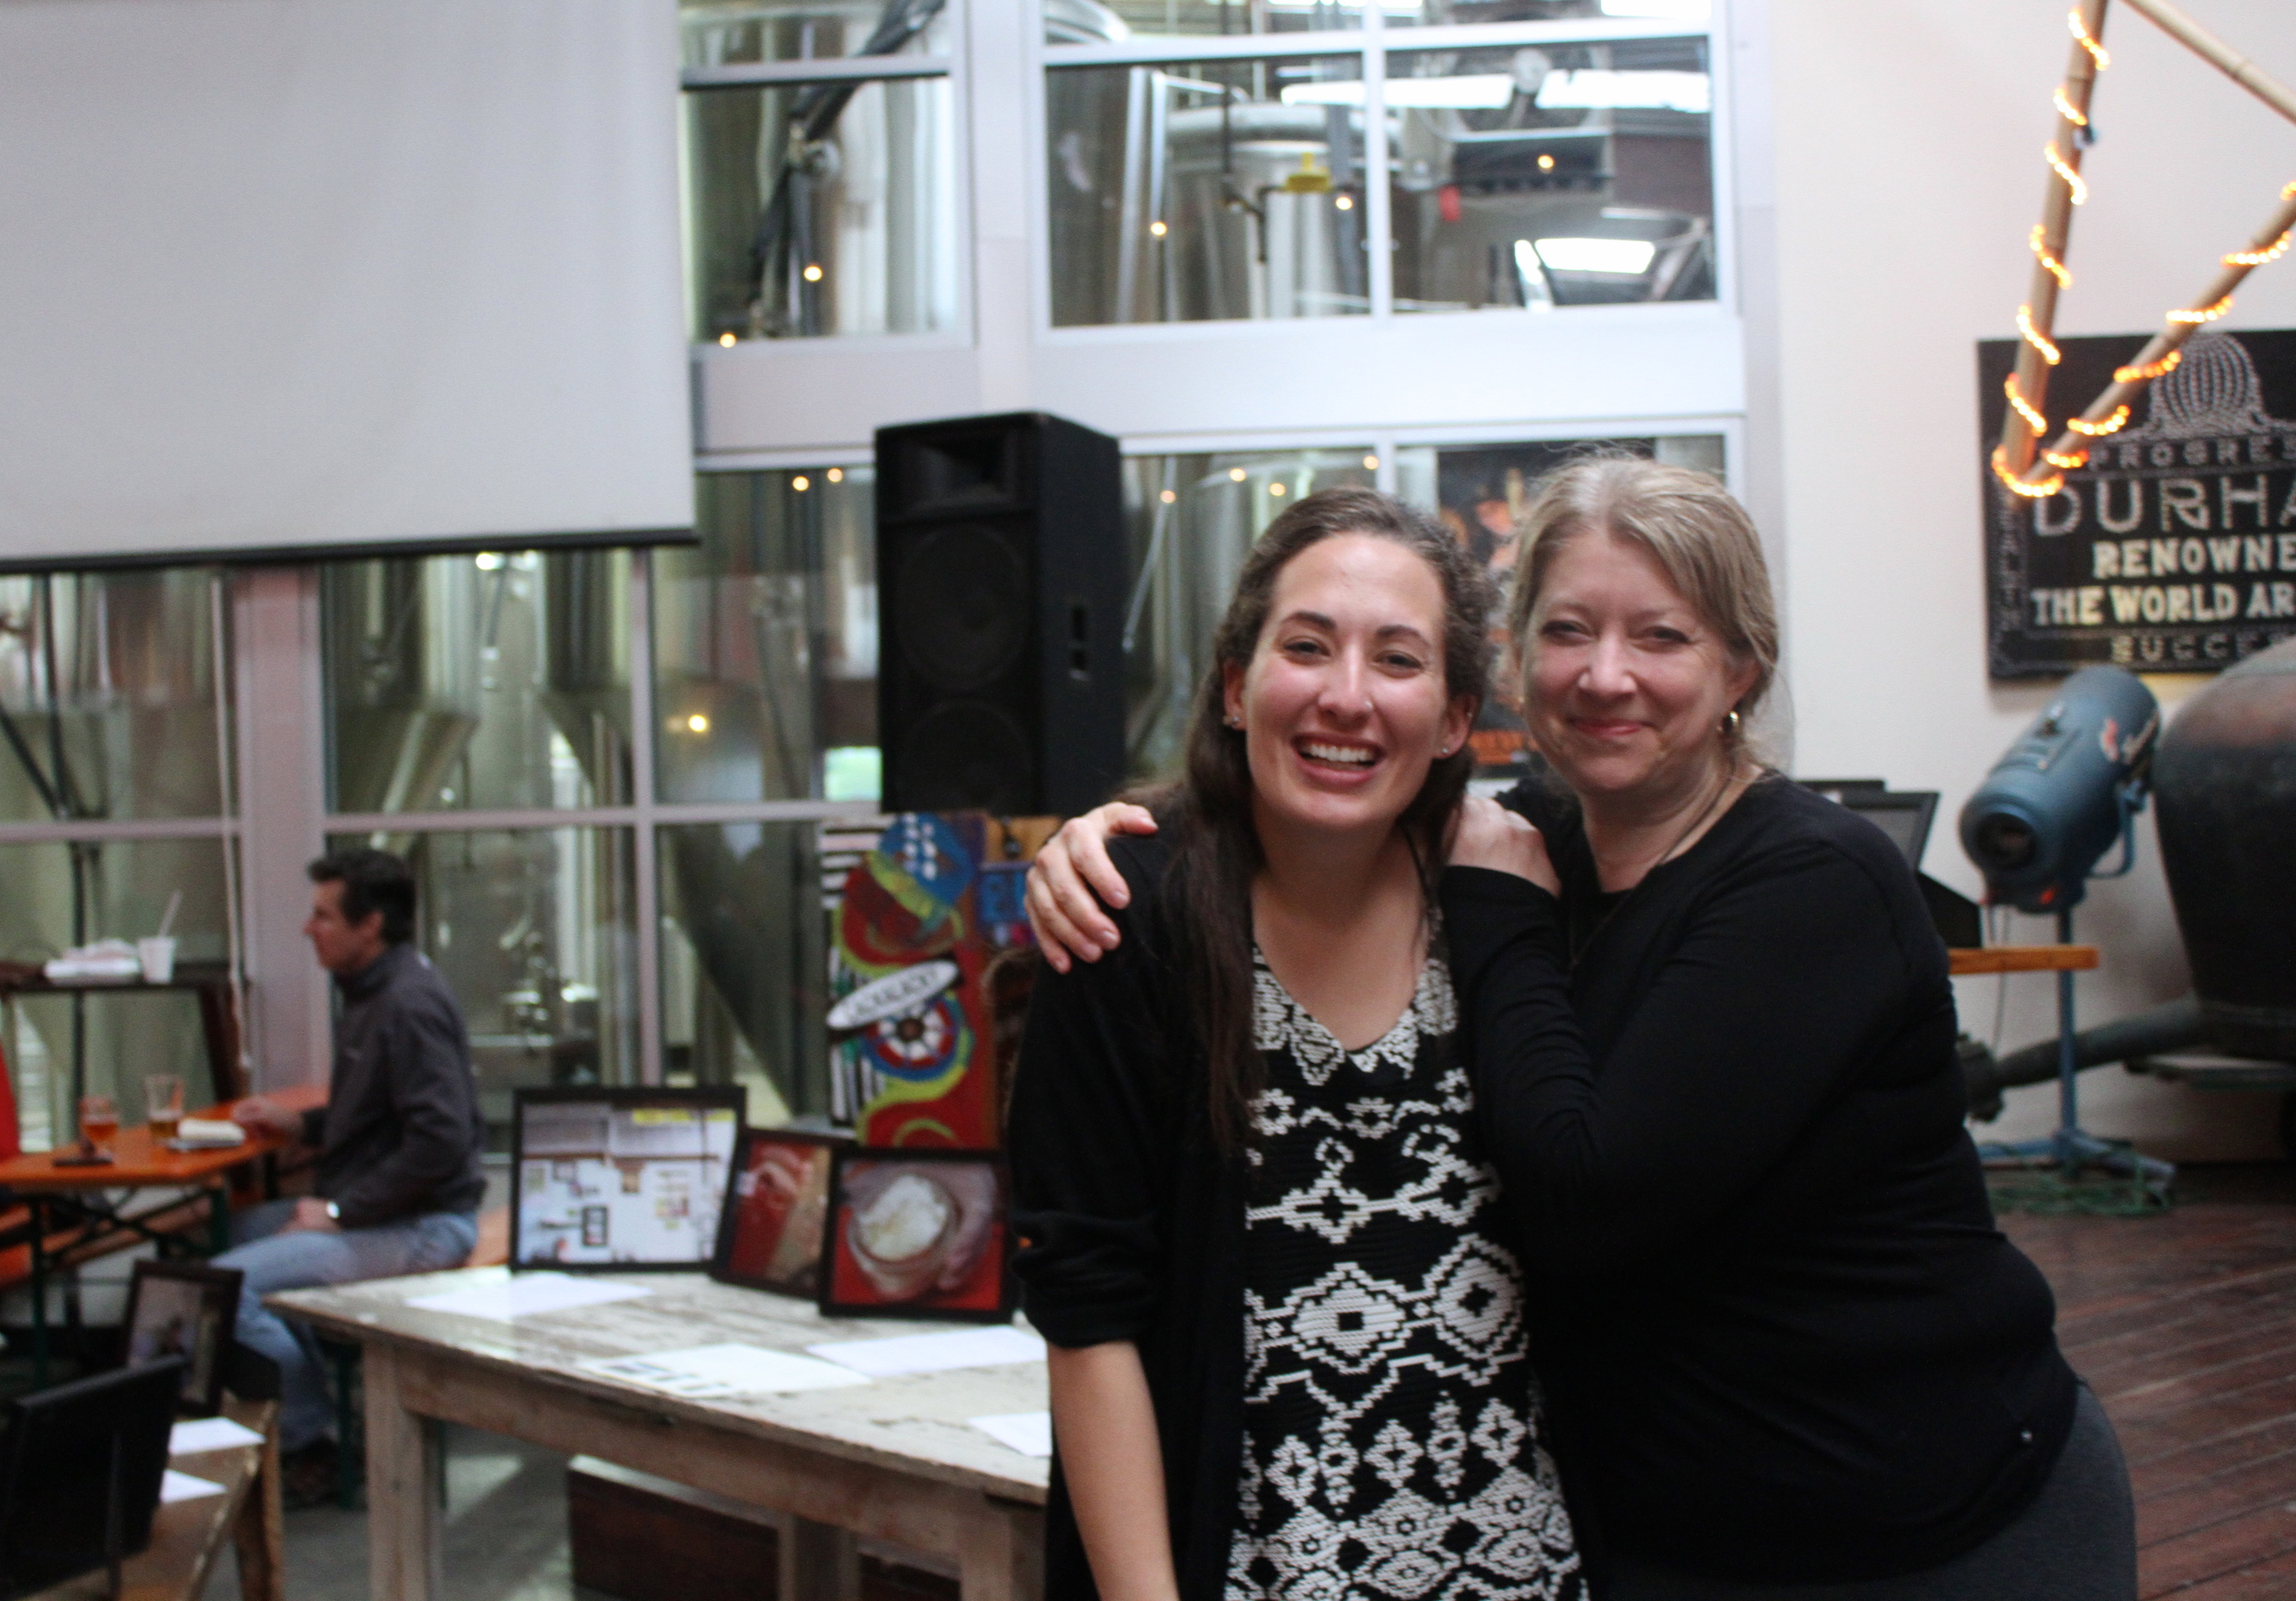 Lisa Satterwhite, my project adviser, and I in front of the display